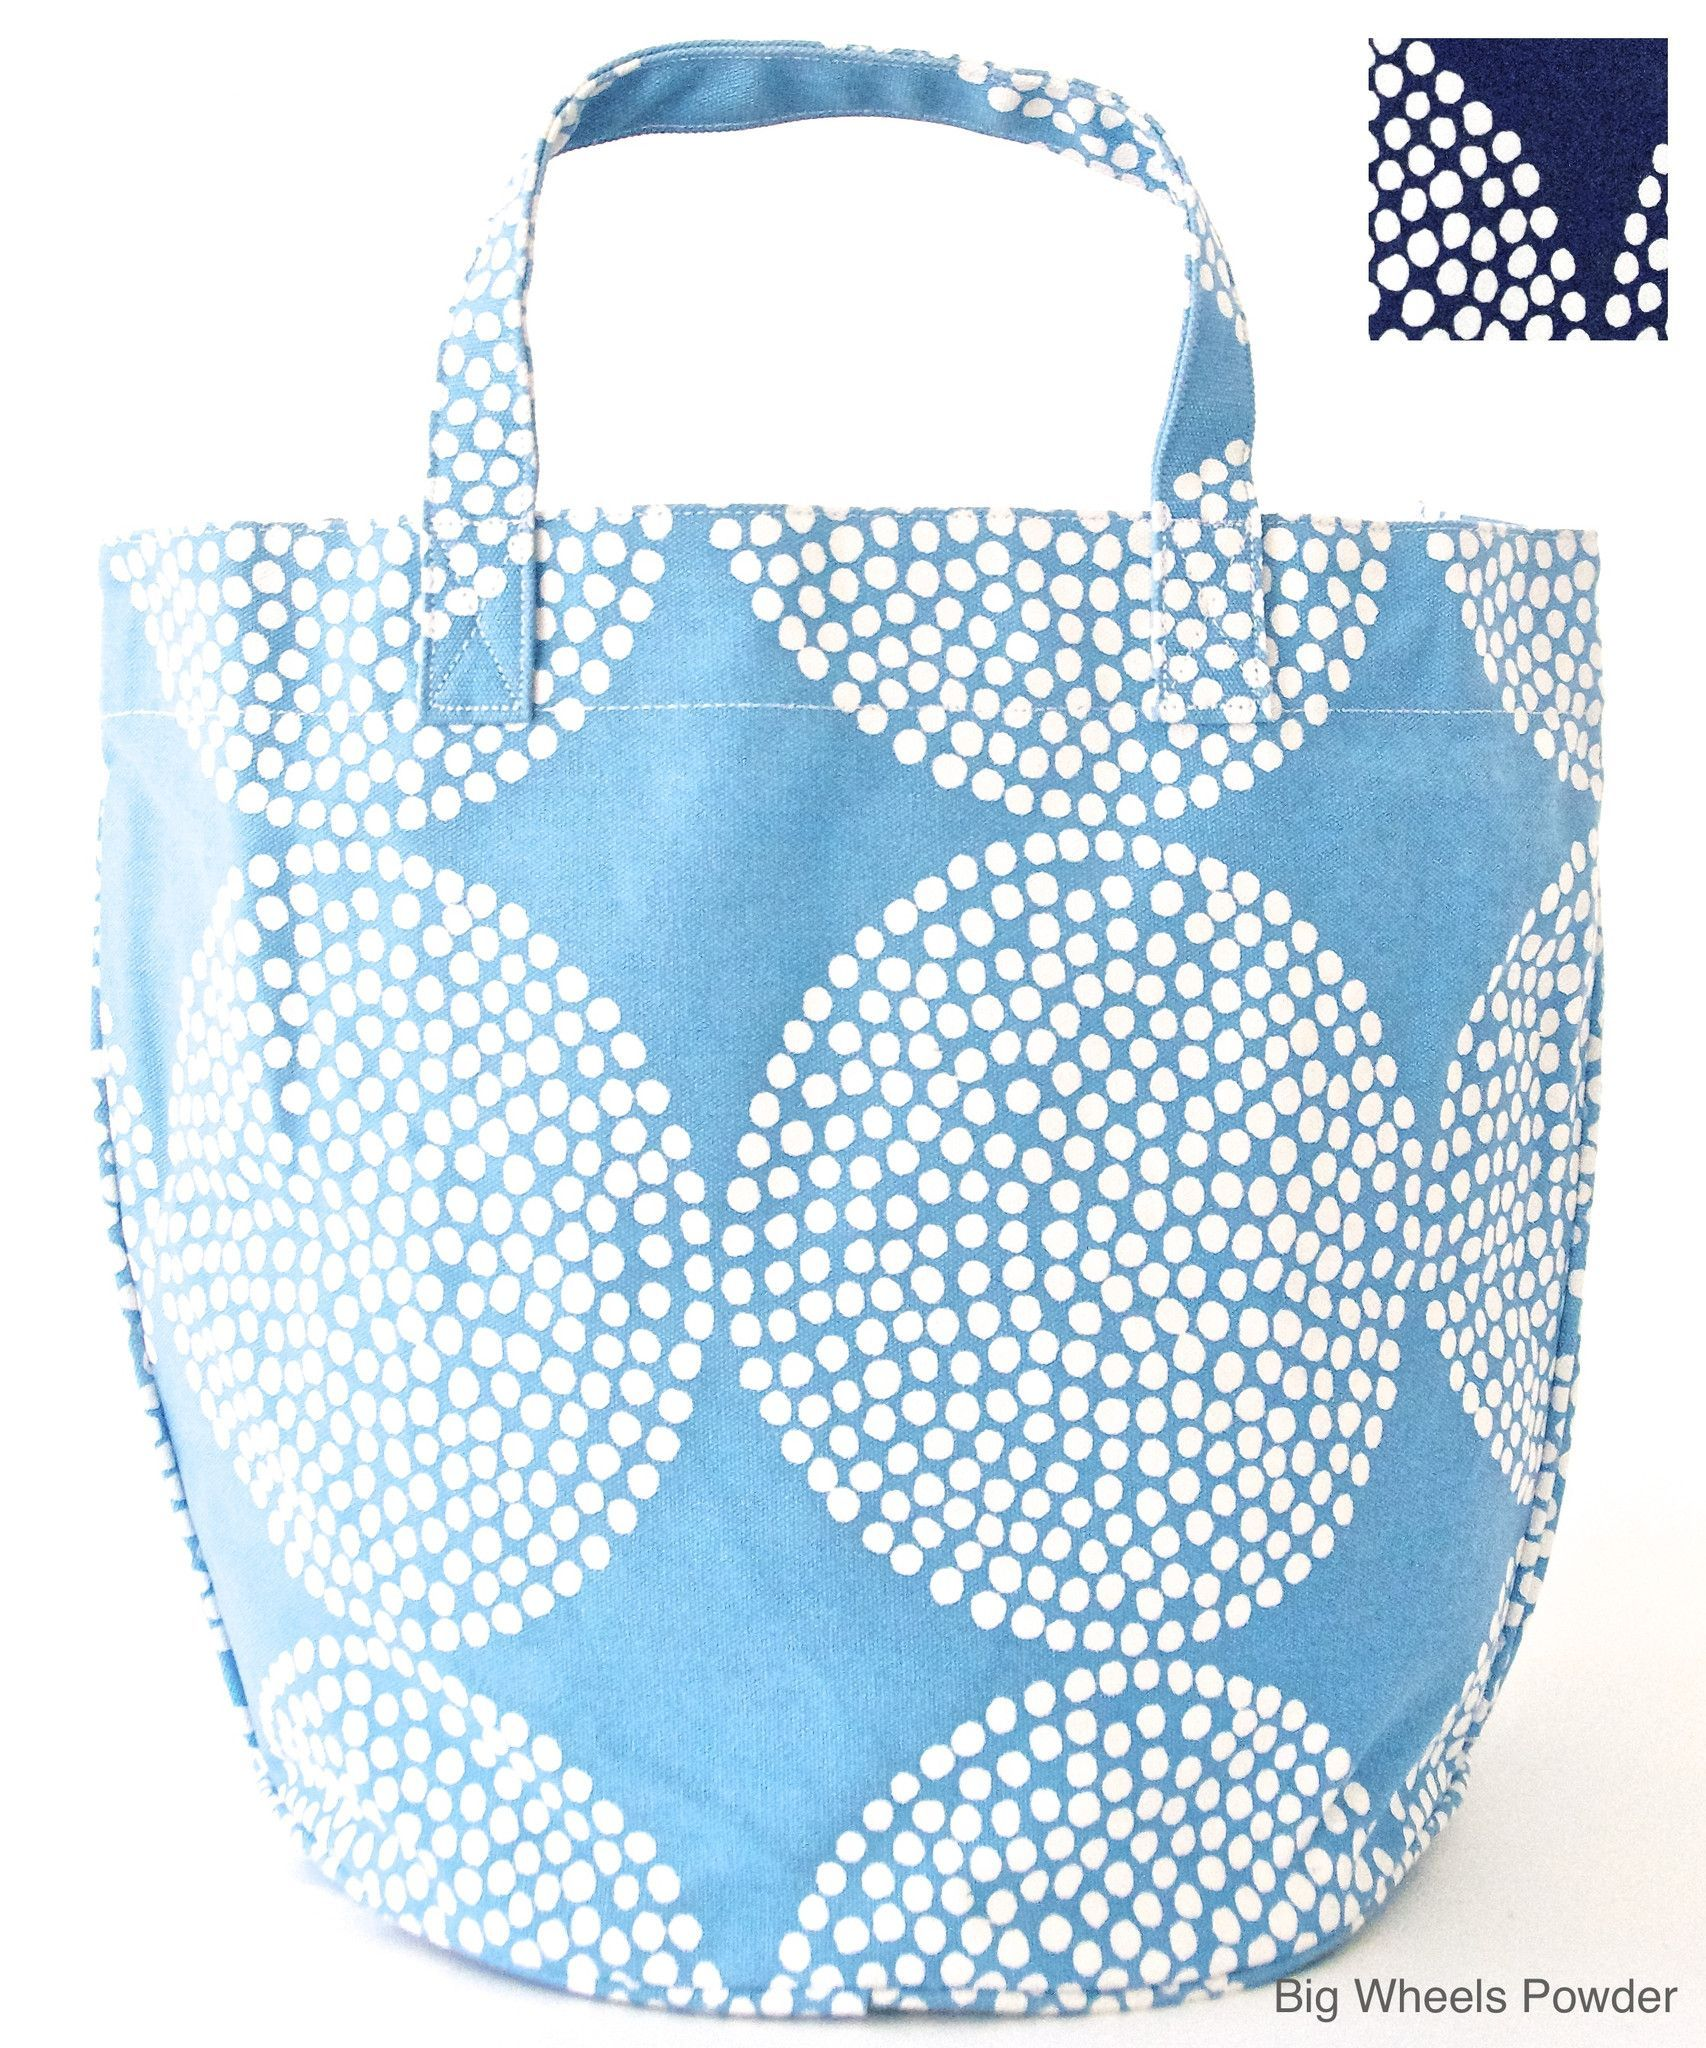 Circle Tote Reusable tote bags, Clothing deals, Circle shape